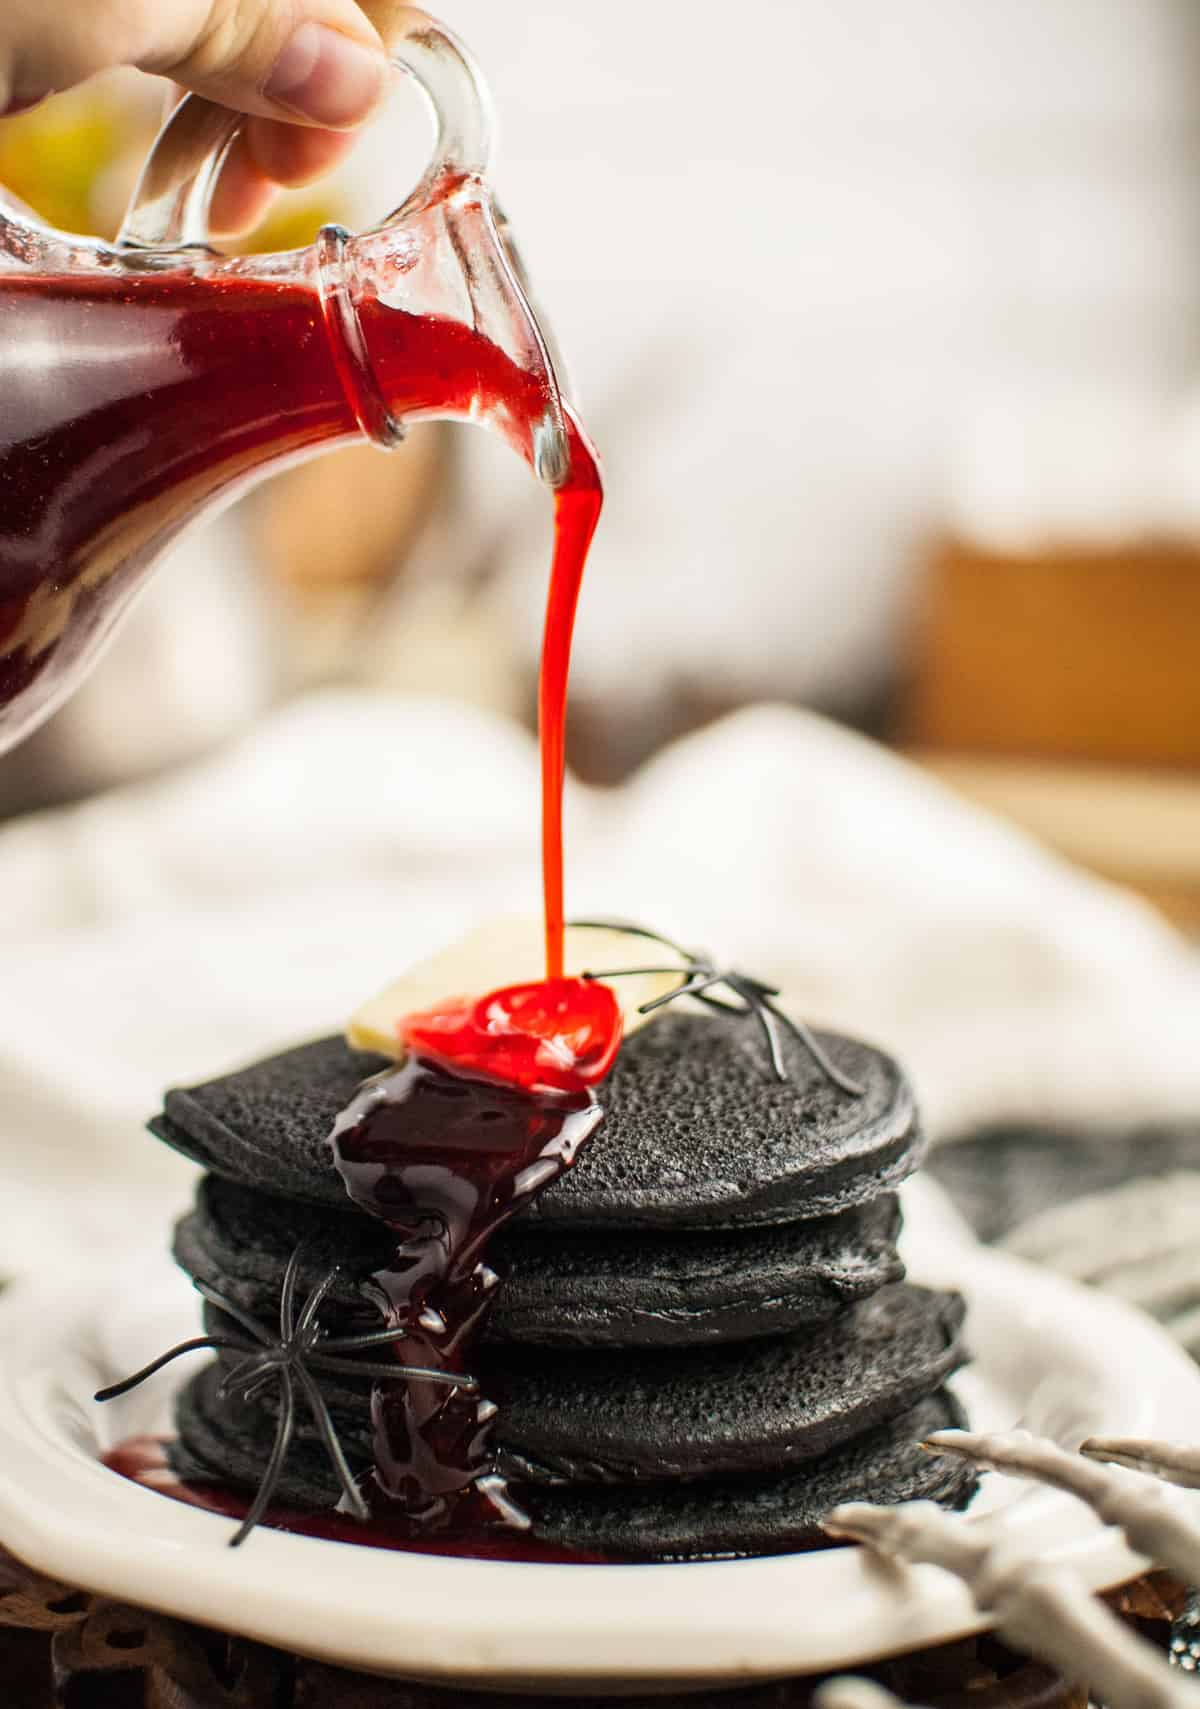 Red syrup being poured on a stack of black pancakes.